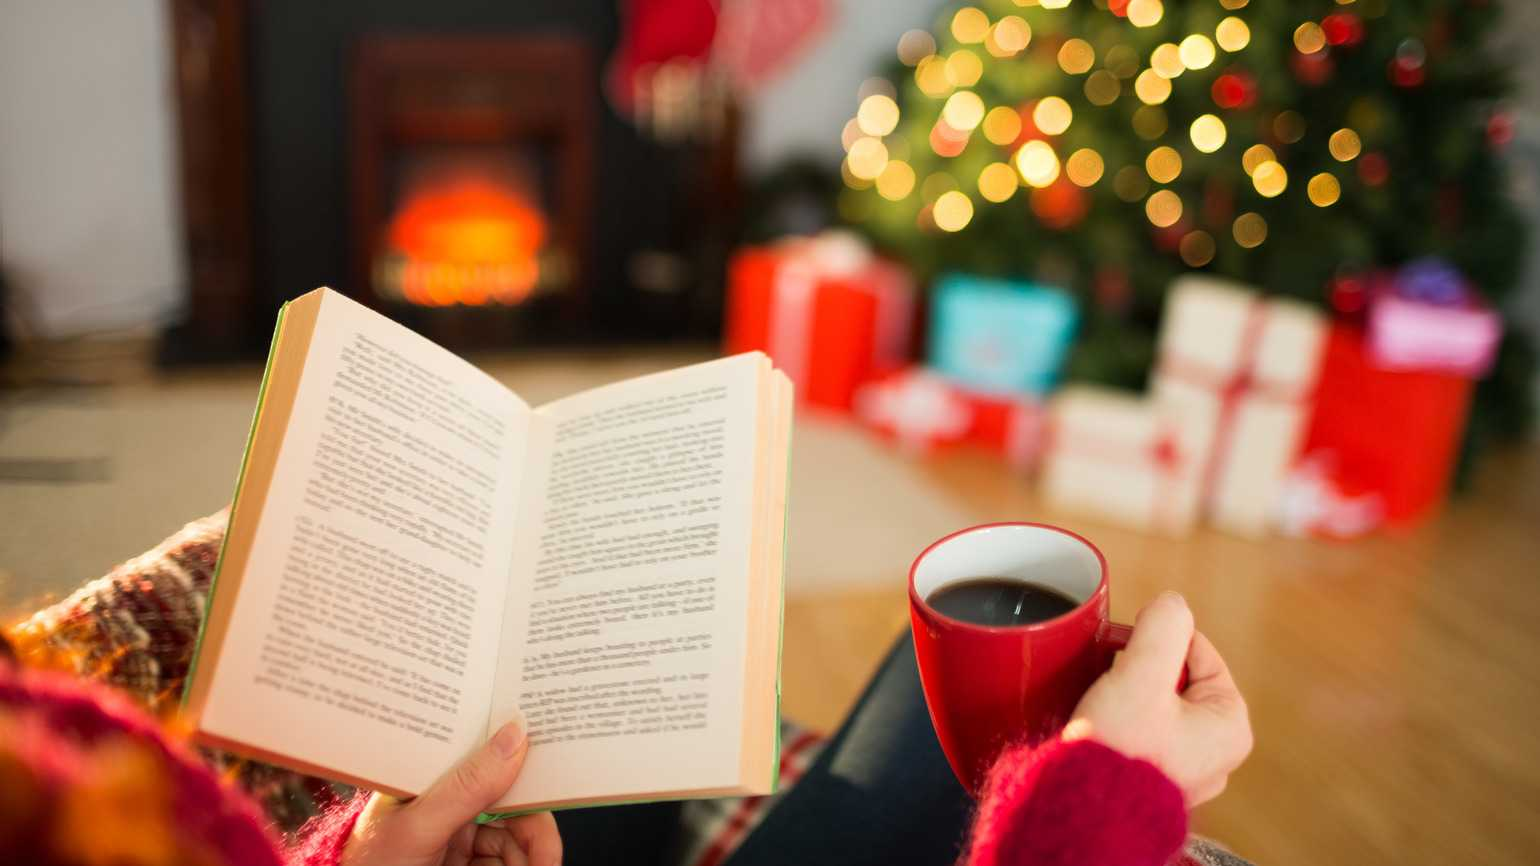 Woman reading a book and drinking coffee at Christmas (Getty)